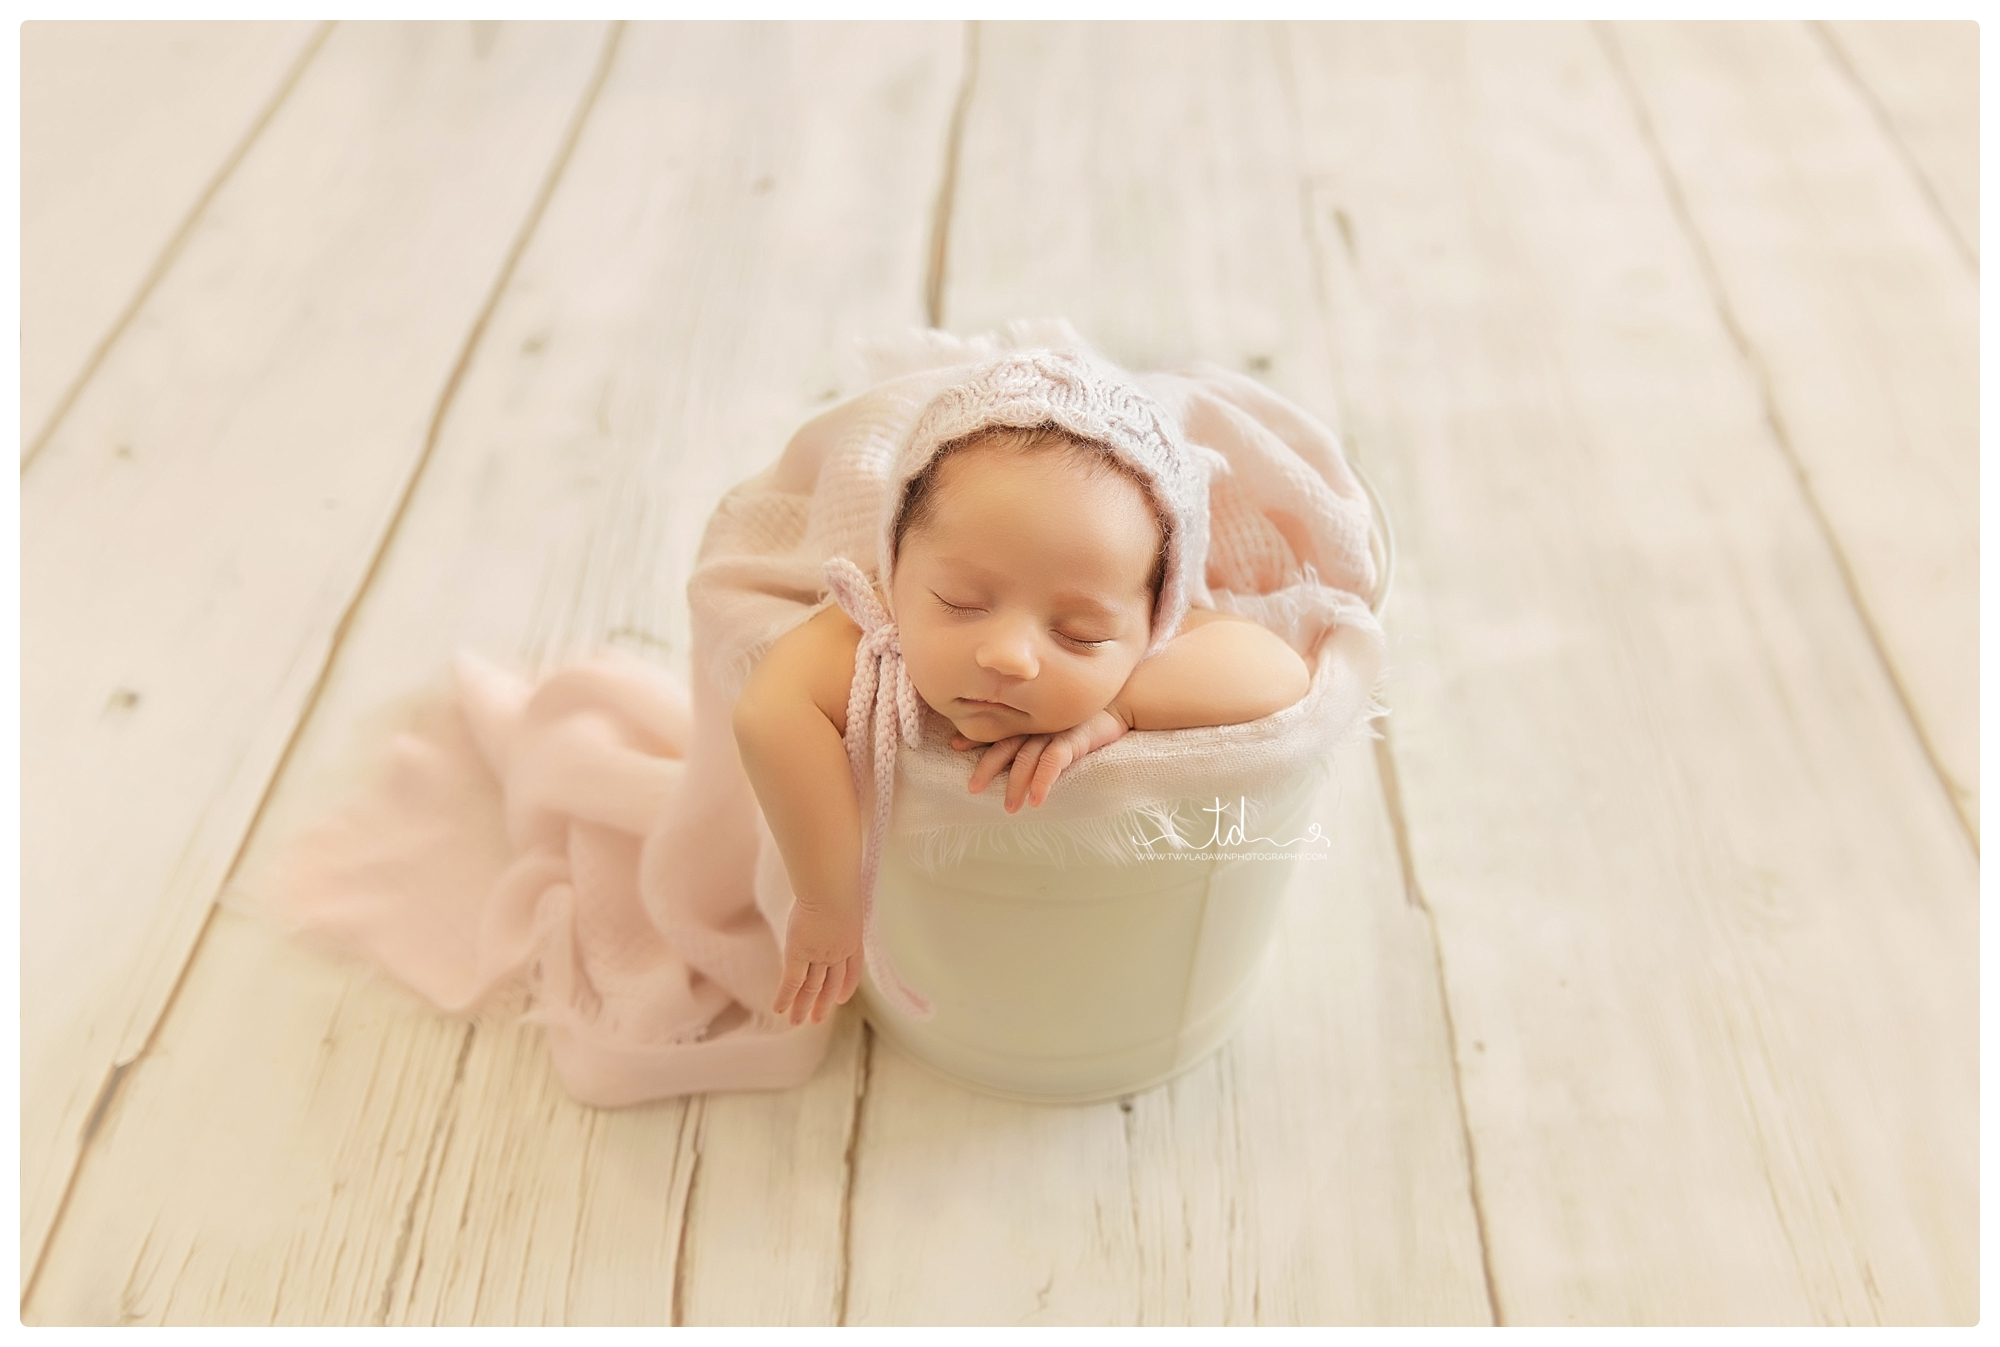 Utah Newborn Photographer | Newborn Portraits | Best Utah Newborn Photography | Newborn Pics | Utah baby pic photographer